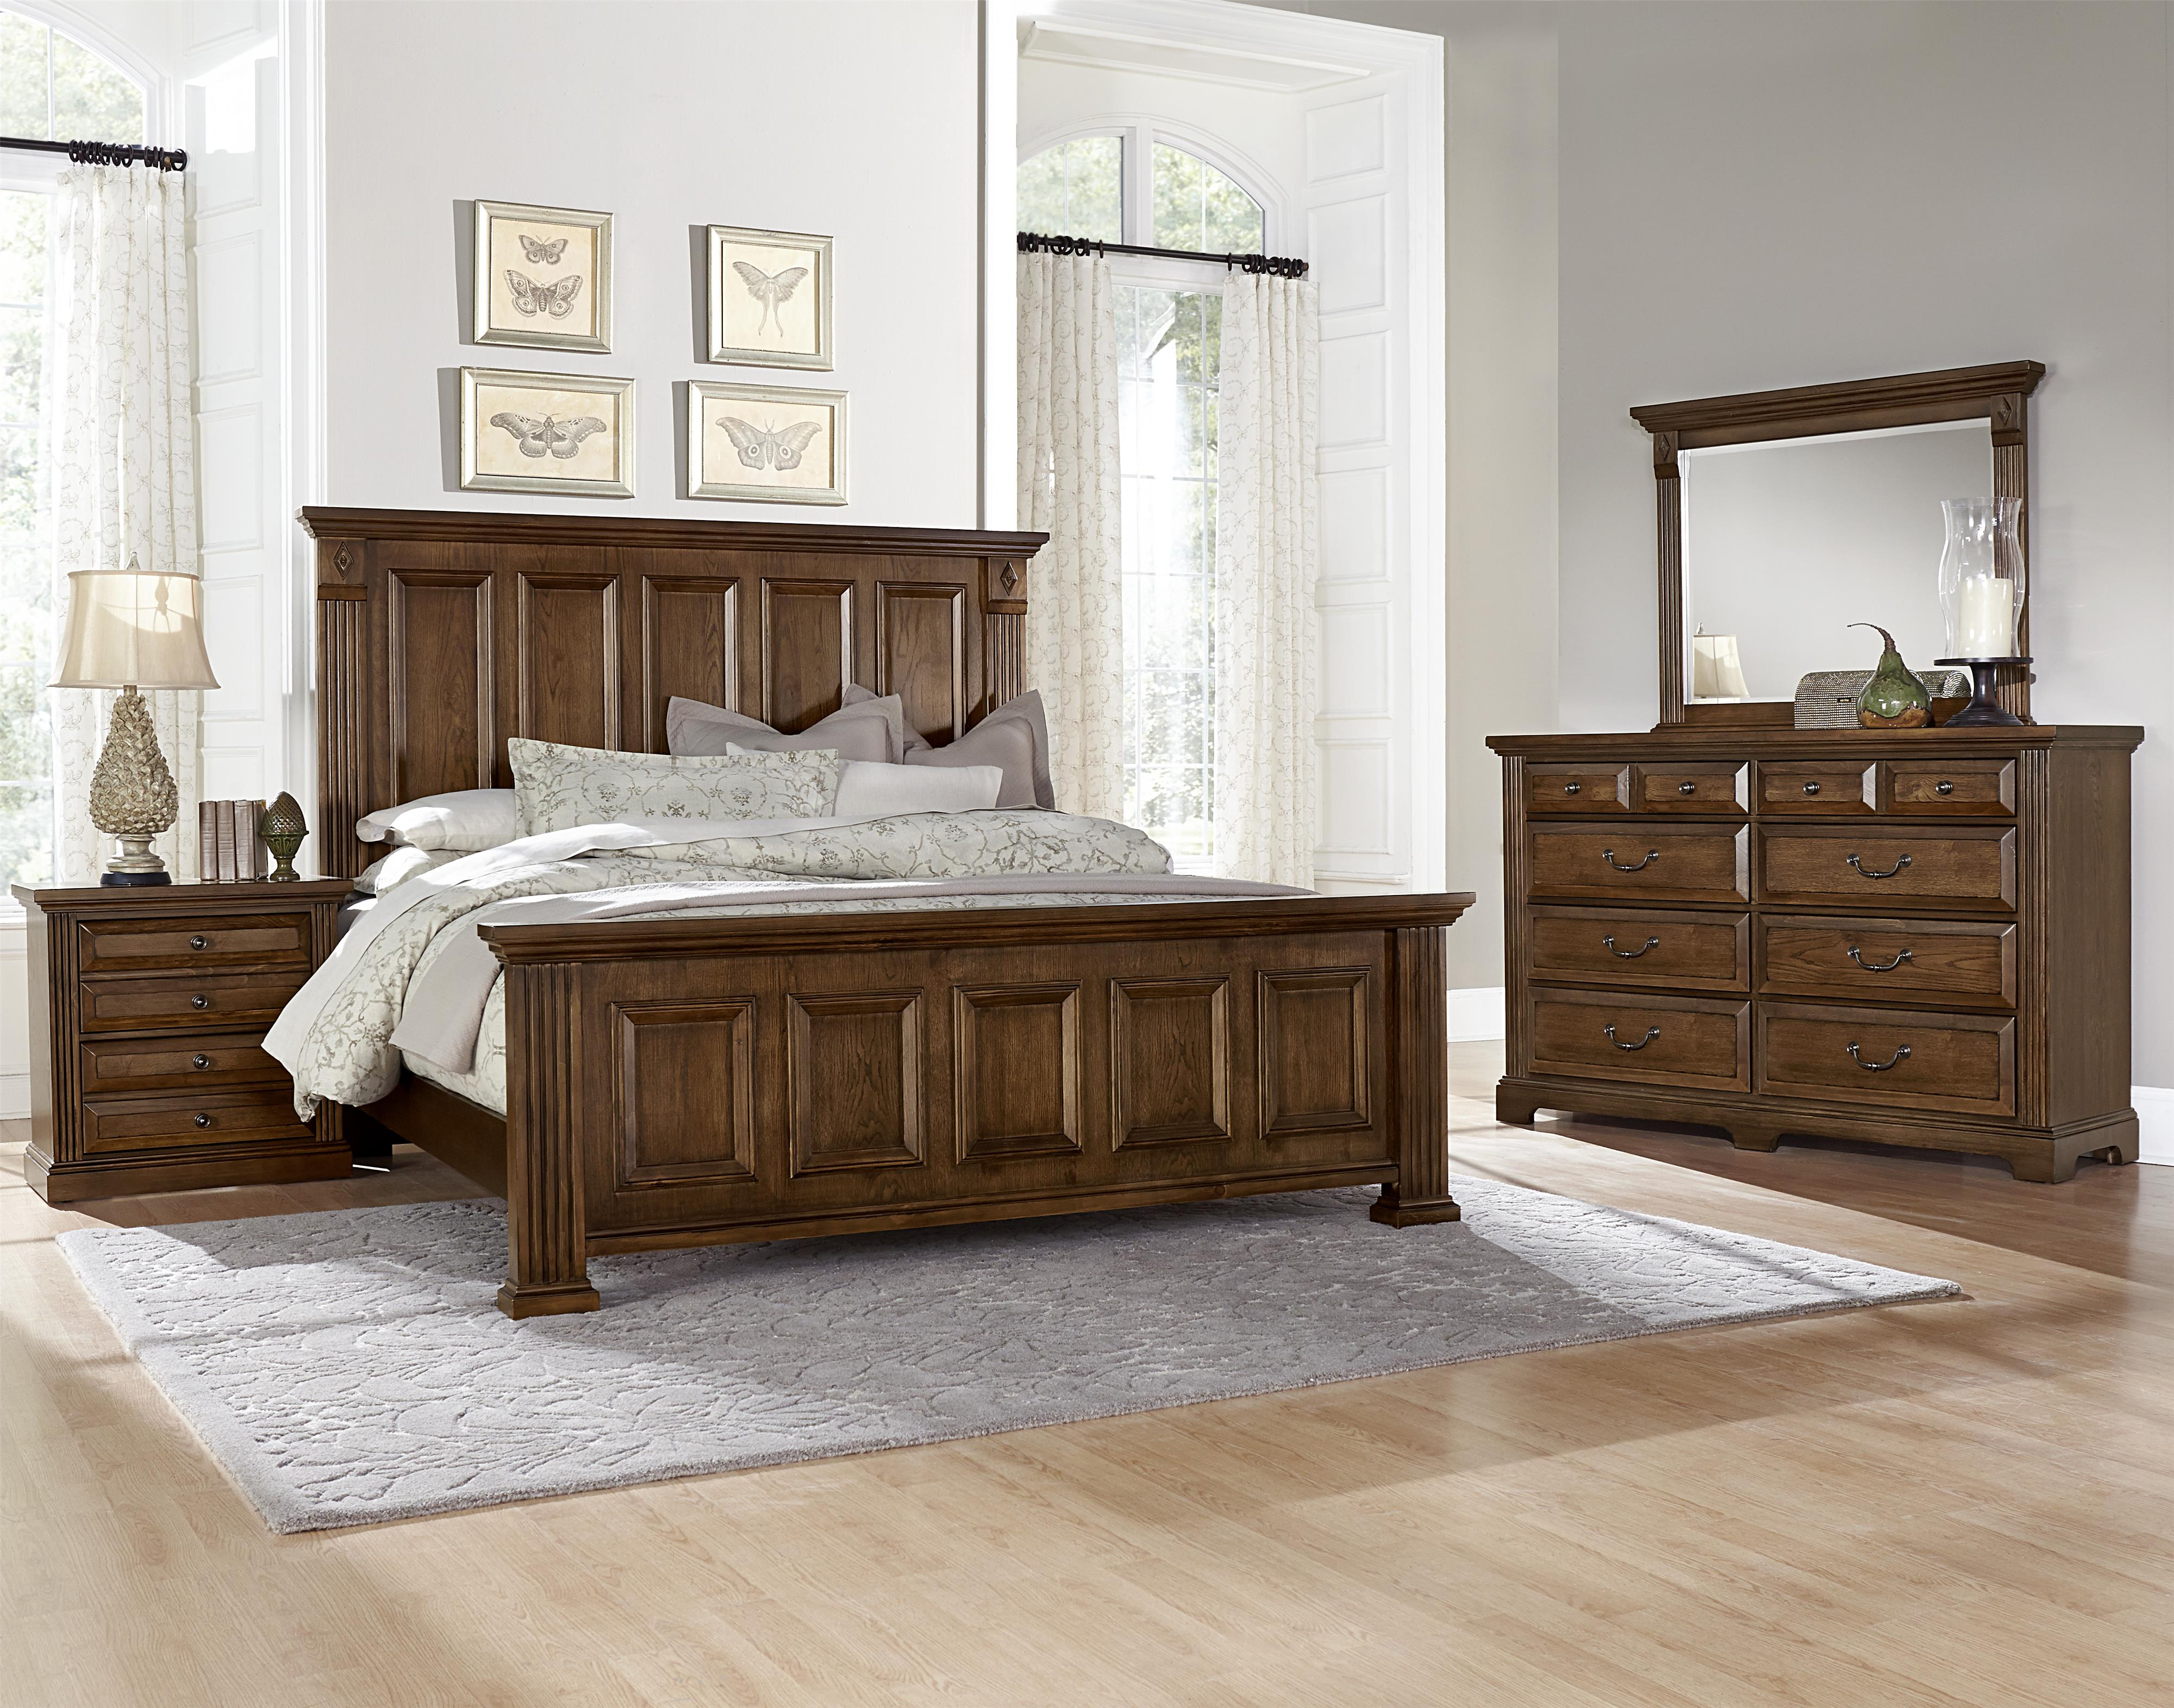 Vaughan Bassett Woodlands Queen Bedroom Group - Item Number: BB97 Q Bedroom Group 1